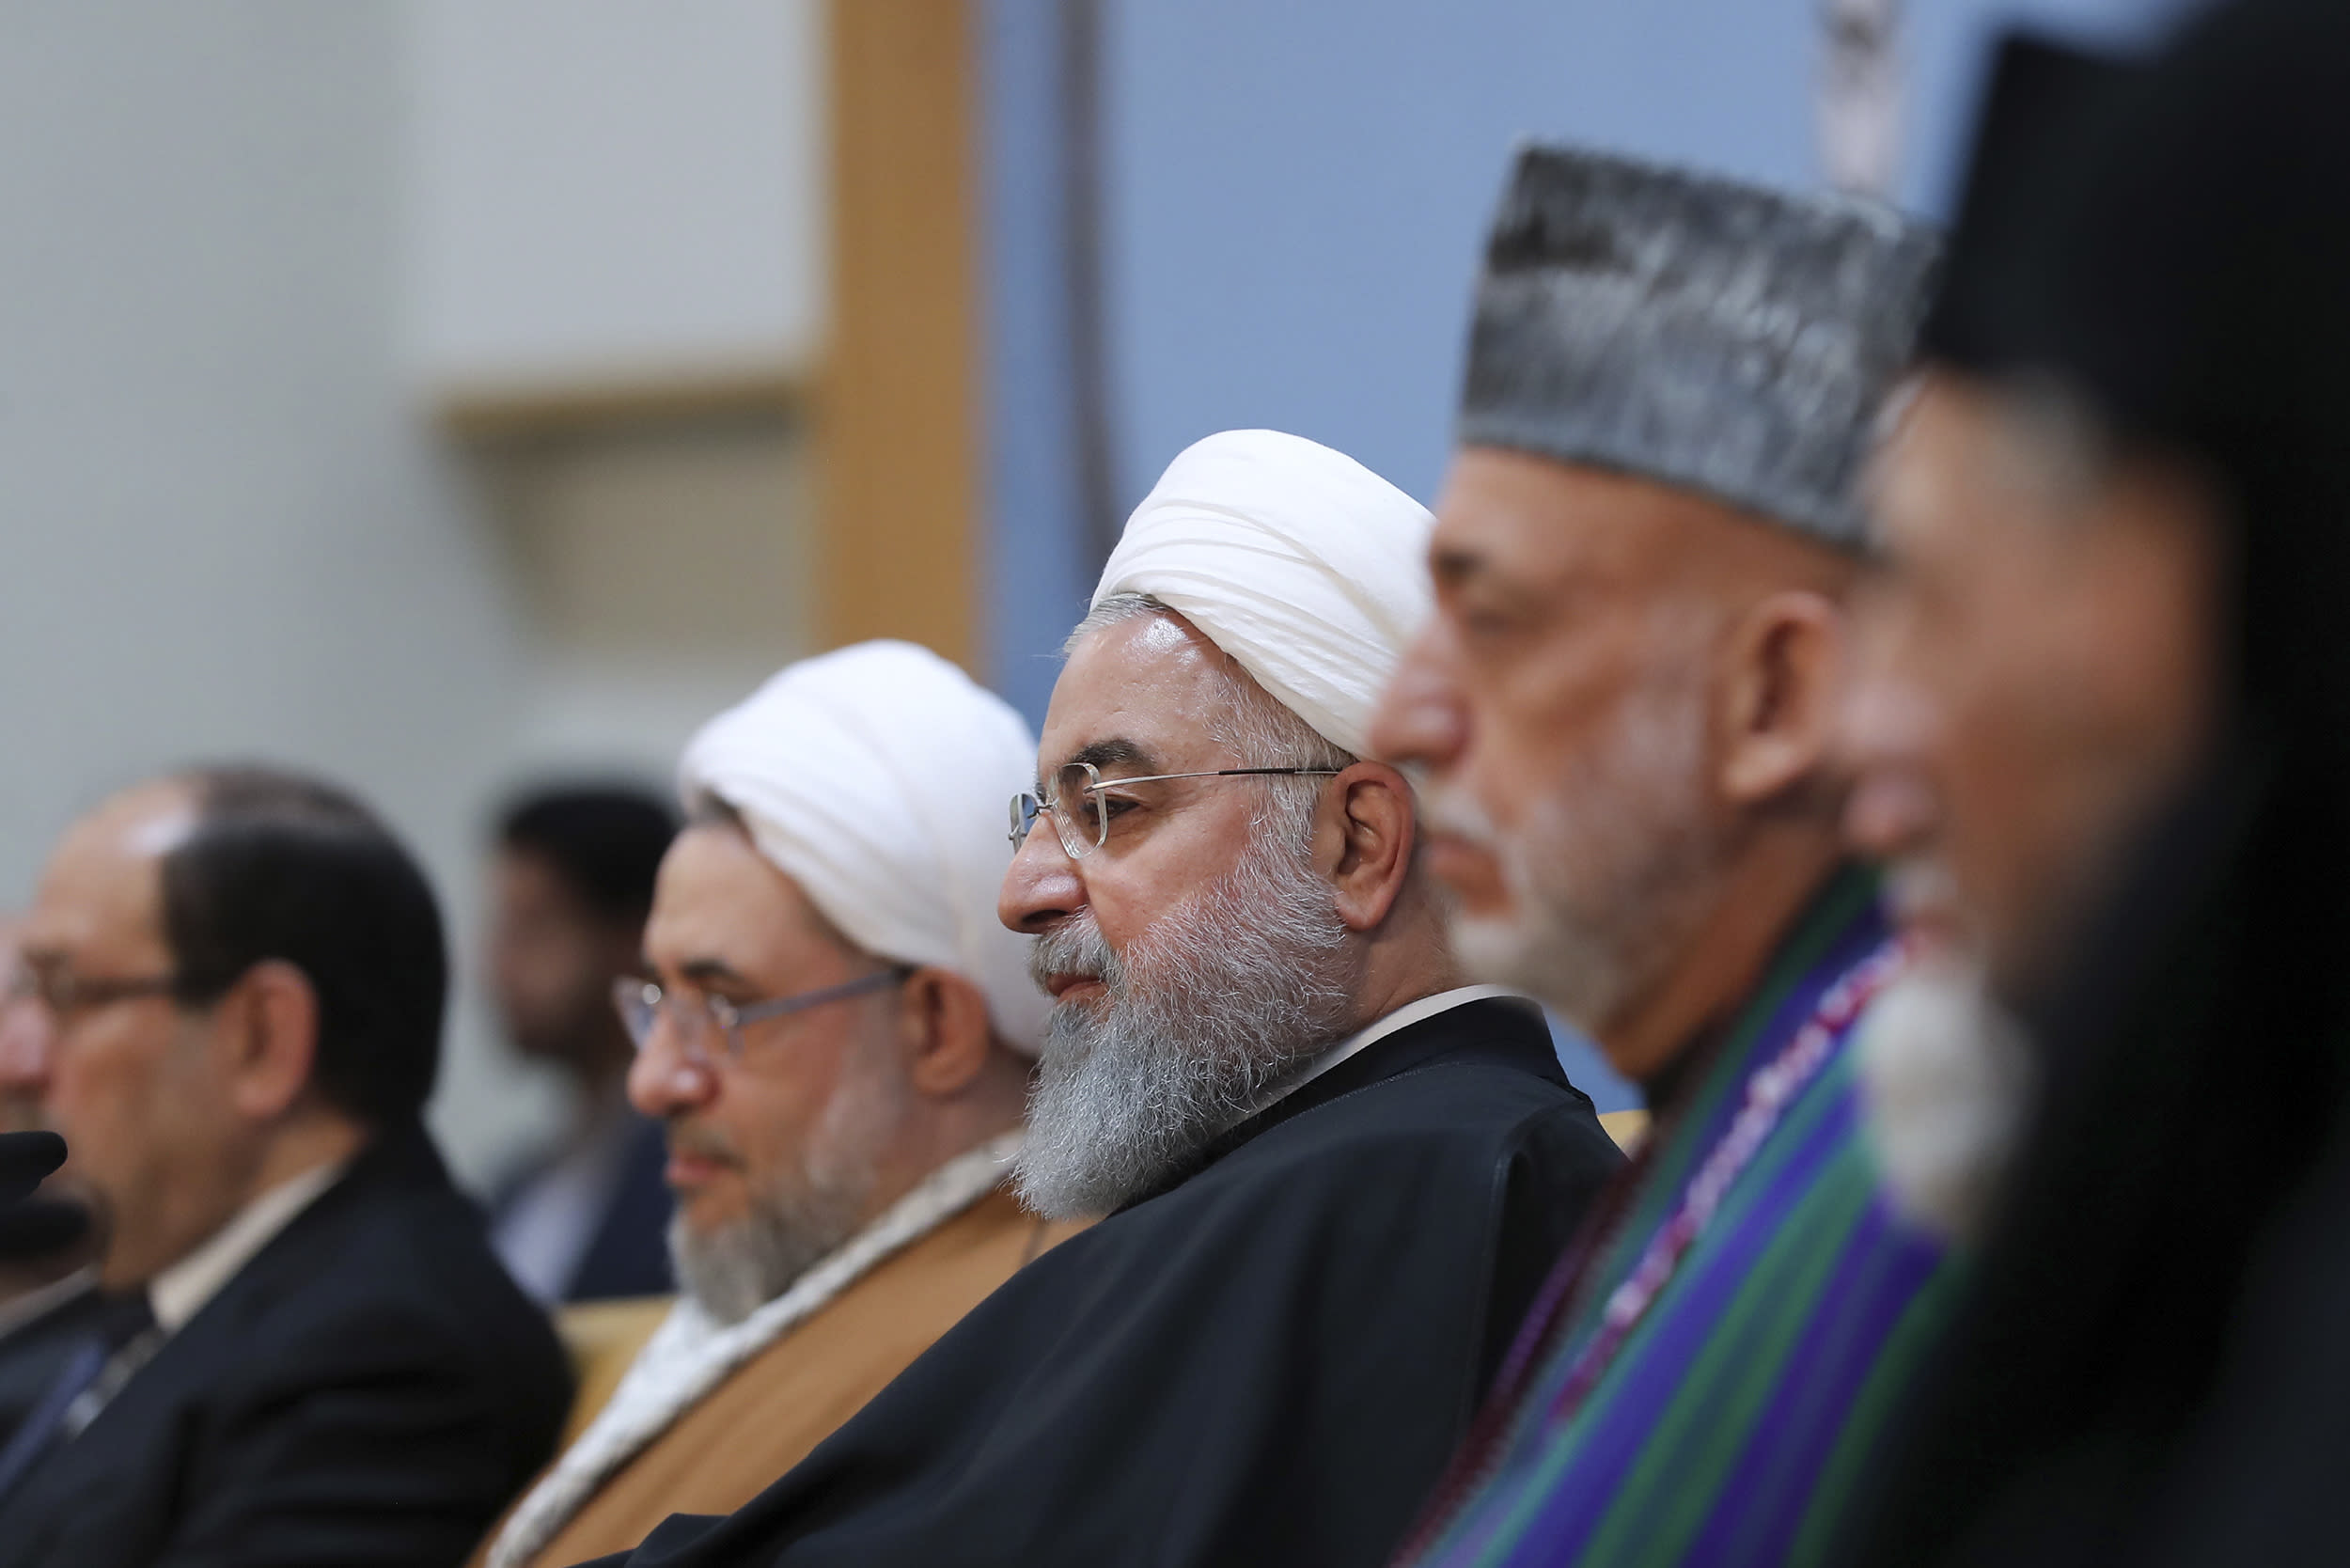 """In this photo released by official website of the office of the Iranian Presidency, President Hassan Rouhani, center, attends an annual Islamic Unity Conference in Tehran, Iran, Saturday, Nov. 24, 2018. Rouhani has called Israel a """"cancerous tumor"""" established by Western countries to advance their interests in the Middle East. (Iranian Presidency Office via AP)"""